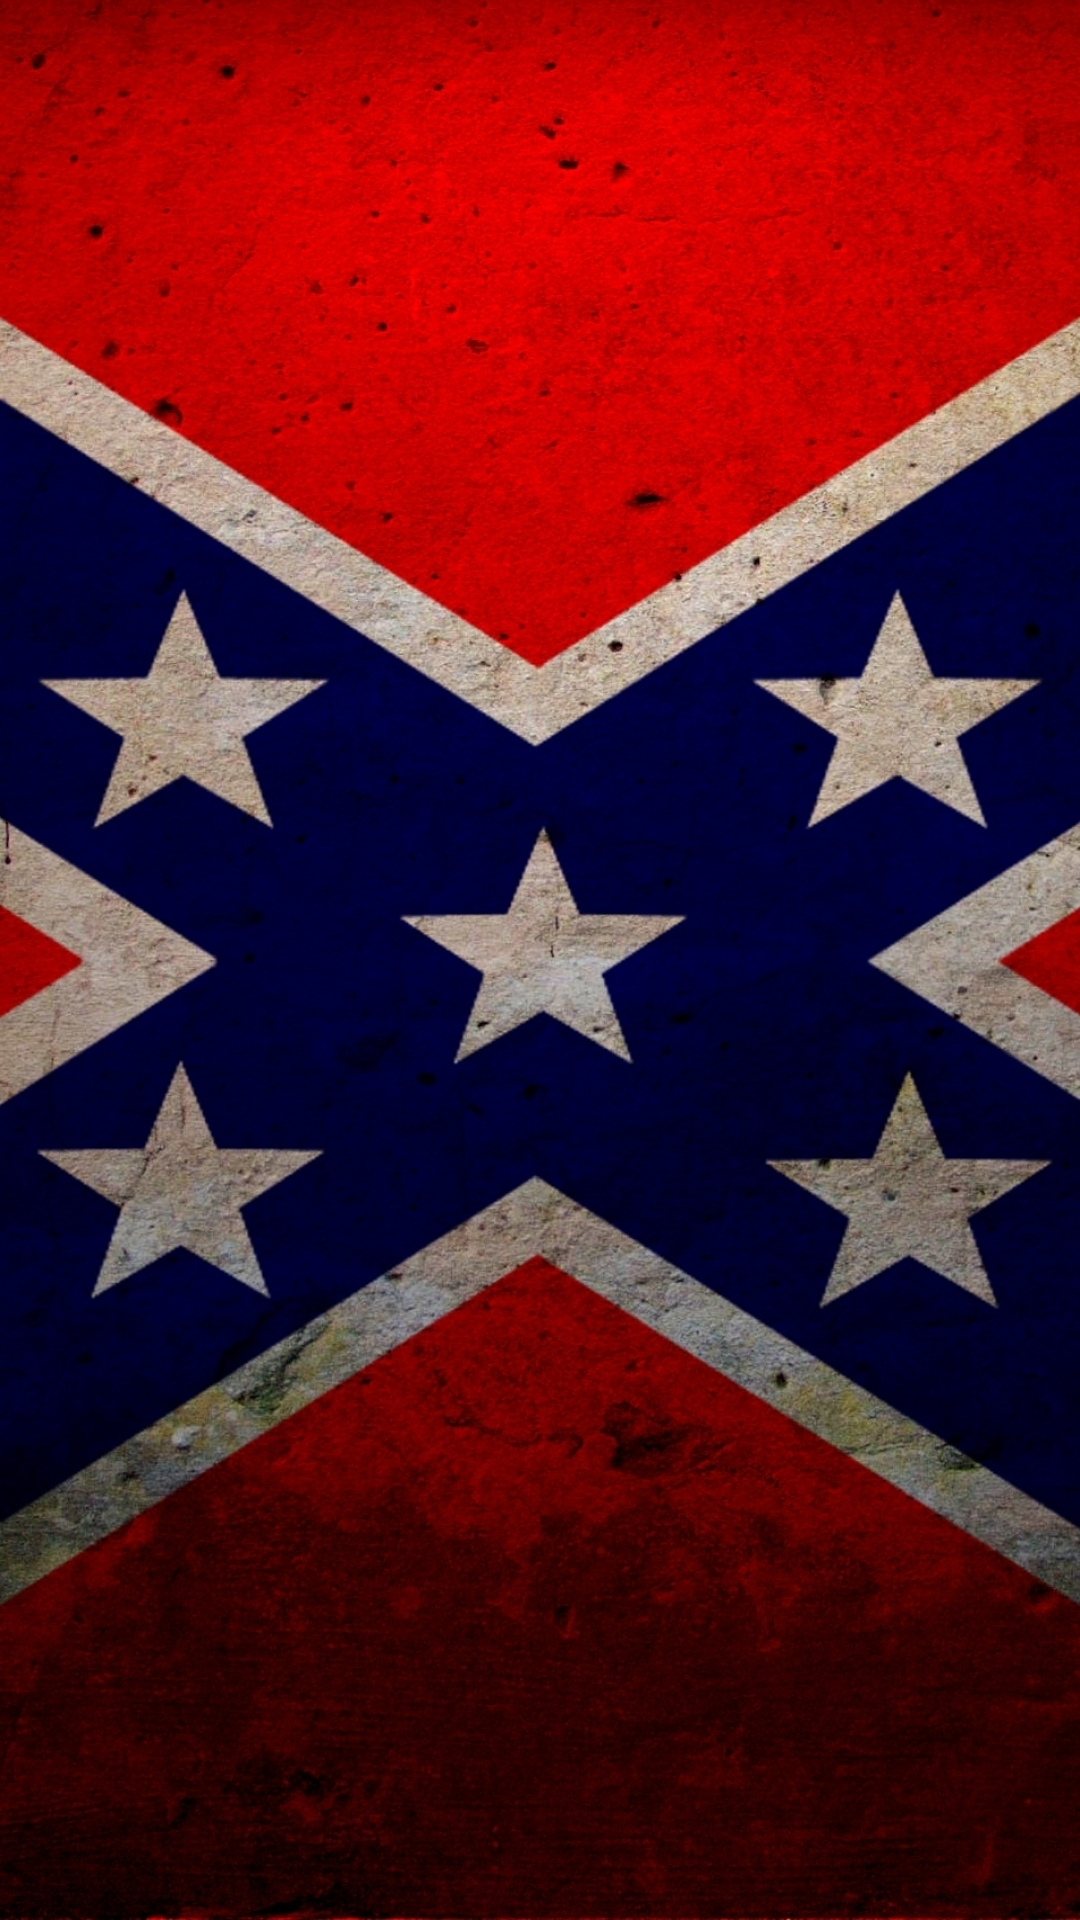 10 Top Confederate Flag Iphone Wallpaper FULL HD 1920×1080 For PC Background 2020